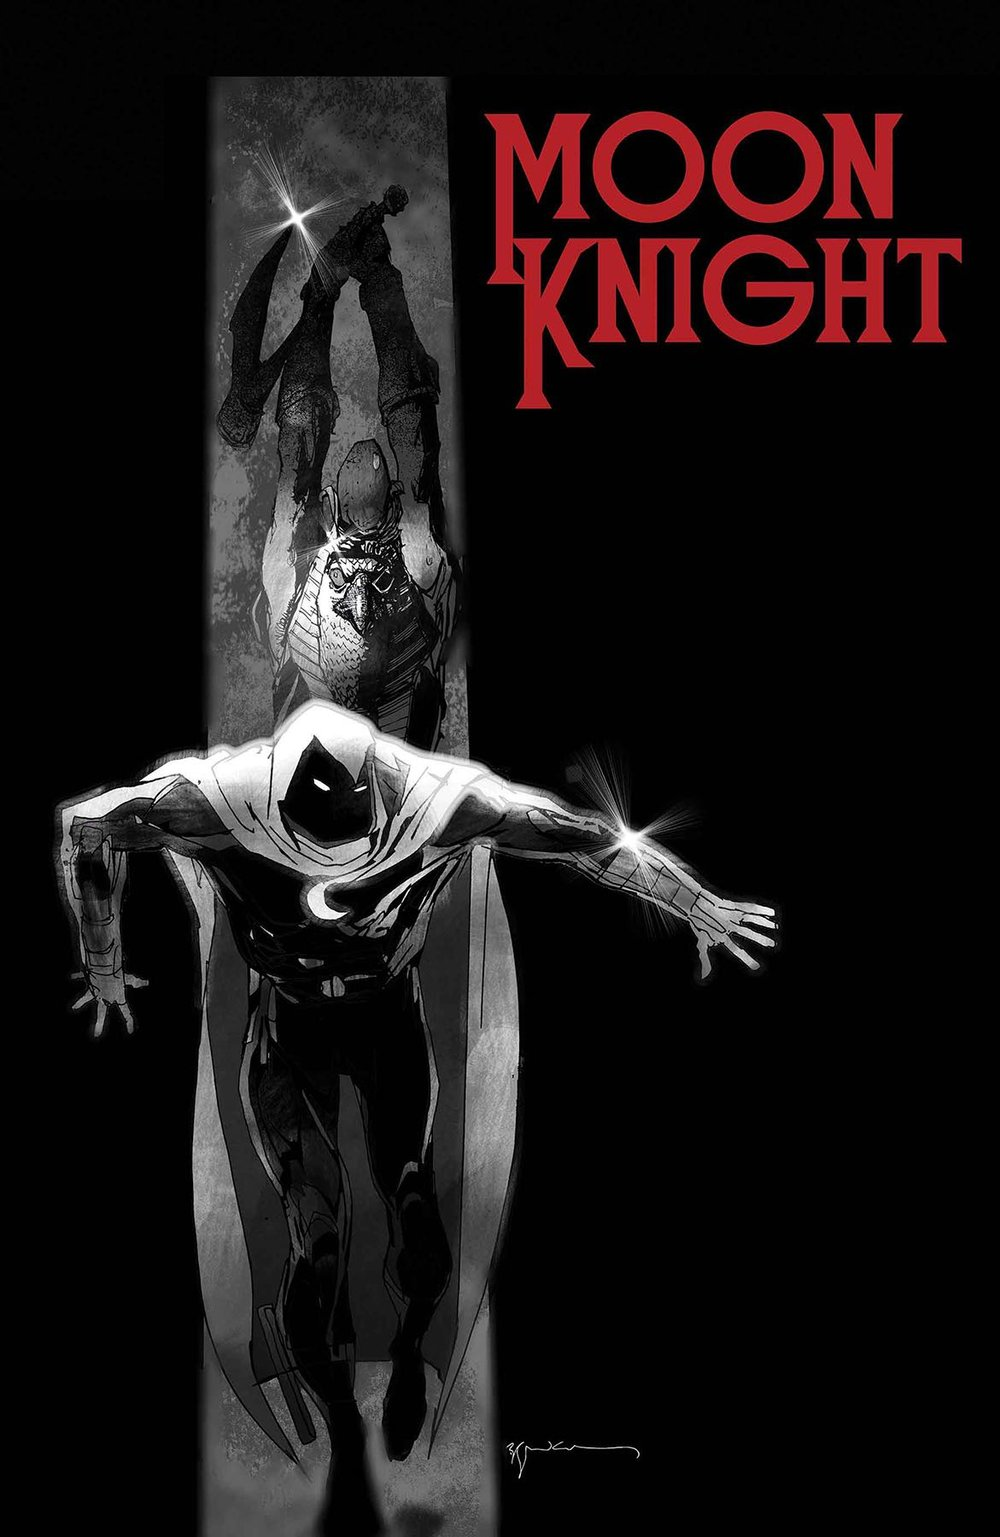 Episode 10 Variant of the Week! (Revoked due to bad 3D cover) - (Marvel) Moon Knight #188 (Sienkiewics Variant)Cover by Bill SienkiewicsWritten by Max BemisIllustrated by Jacen BurrowsDid the Content Match the Drapes? - UNR